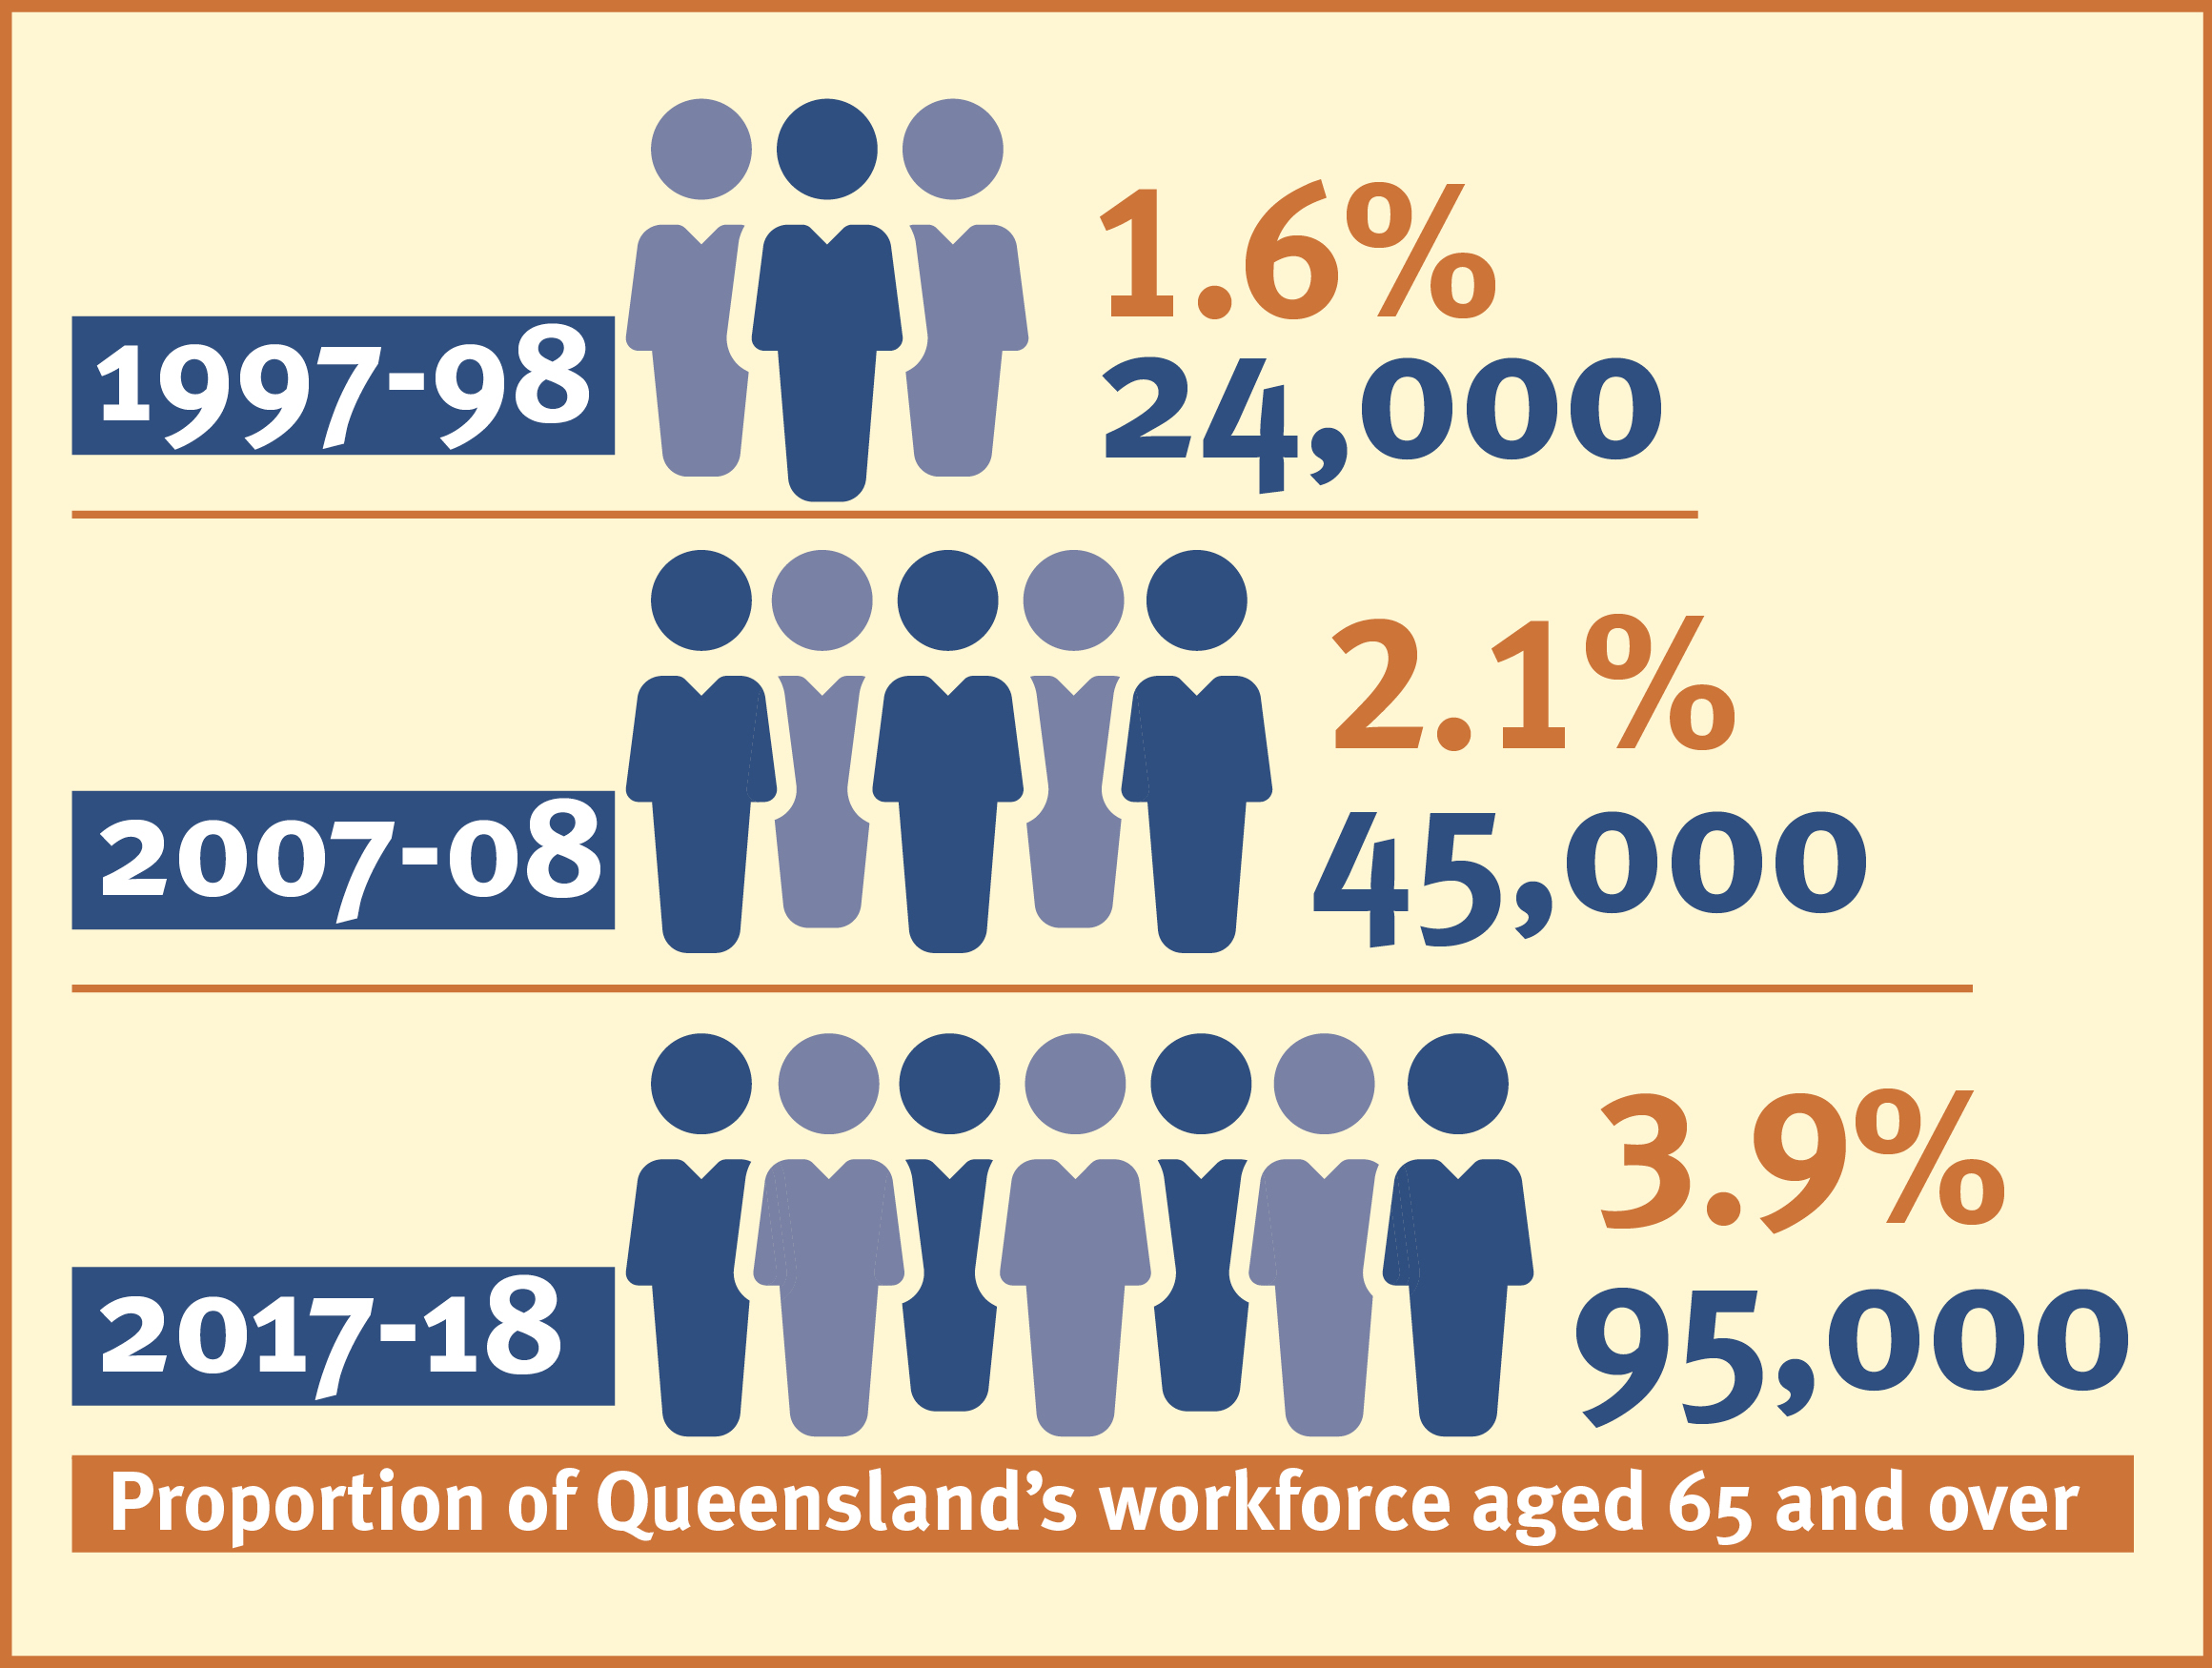 Proportion of Qld workforce aged 65 and over